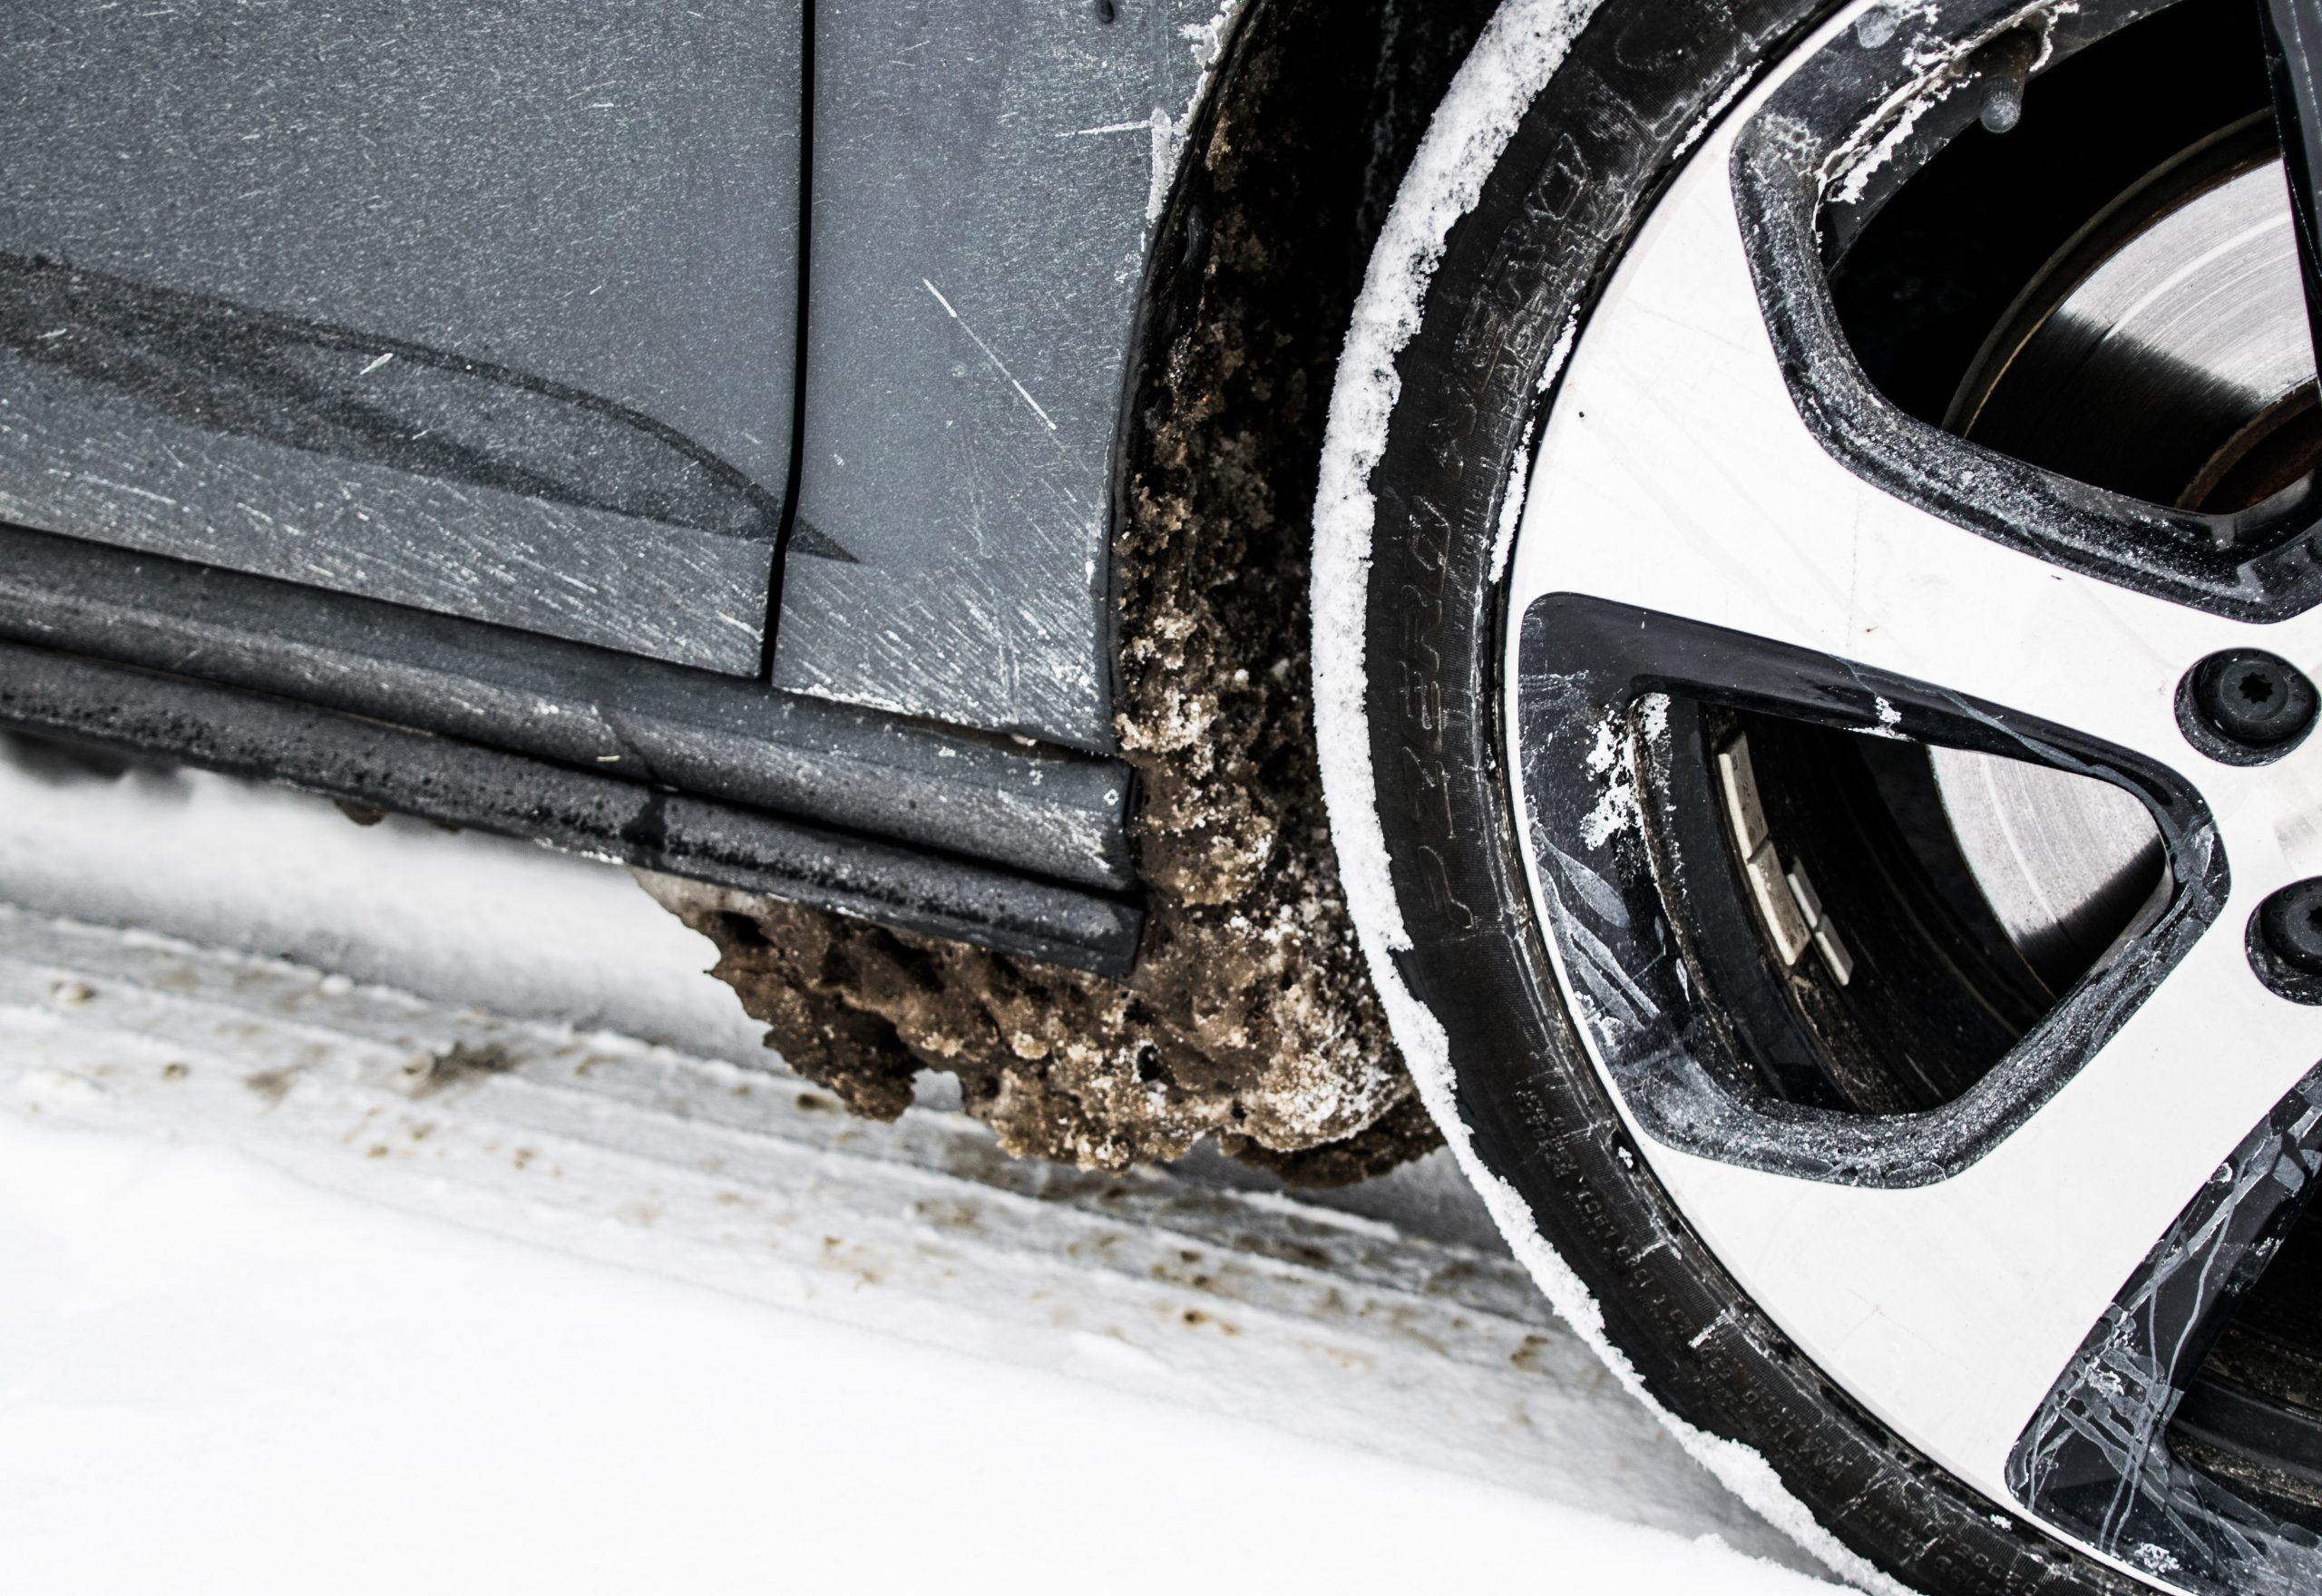 Looking for a great tire-change near you? Complete Collision can help.